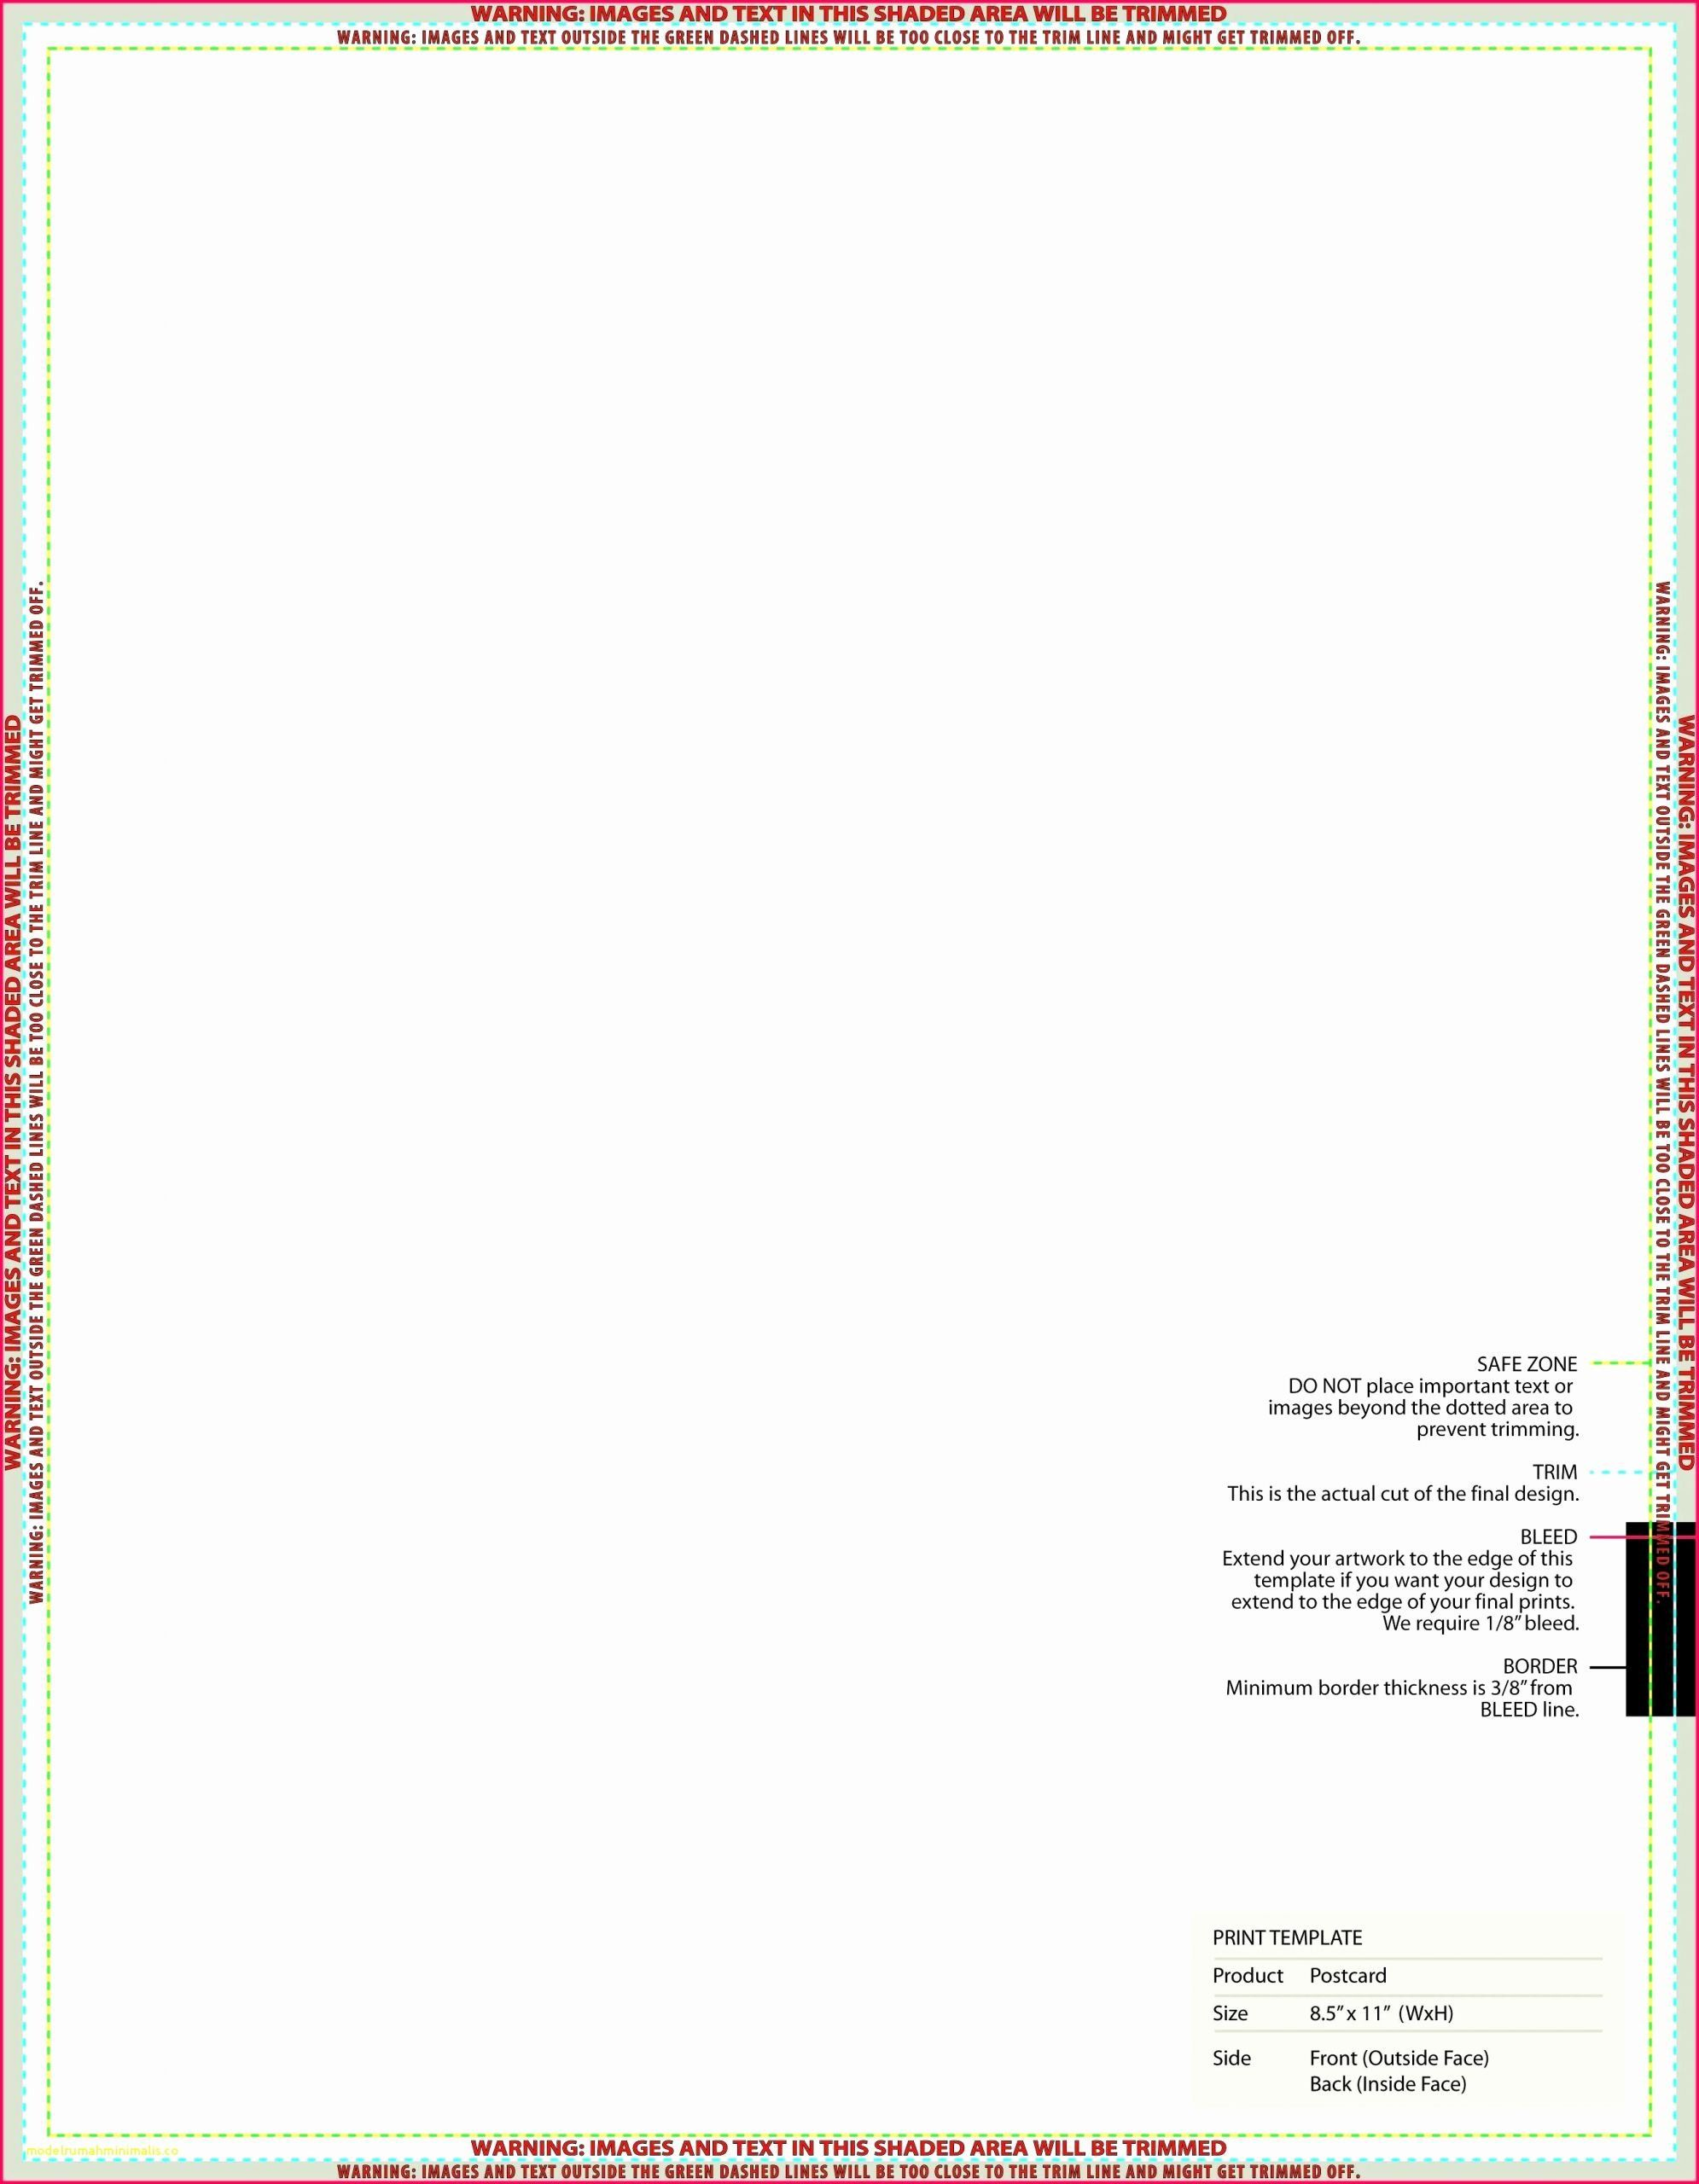 Avery Label Template Google Docs New 006 Avery Binder Templates Spine Inch Template Singular 1 Binder Spine Labels Binder Labels Spine Labels